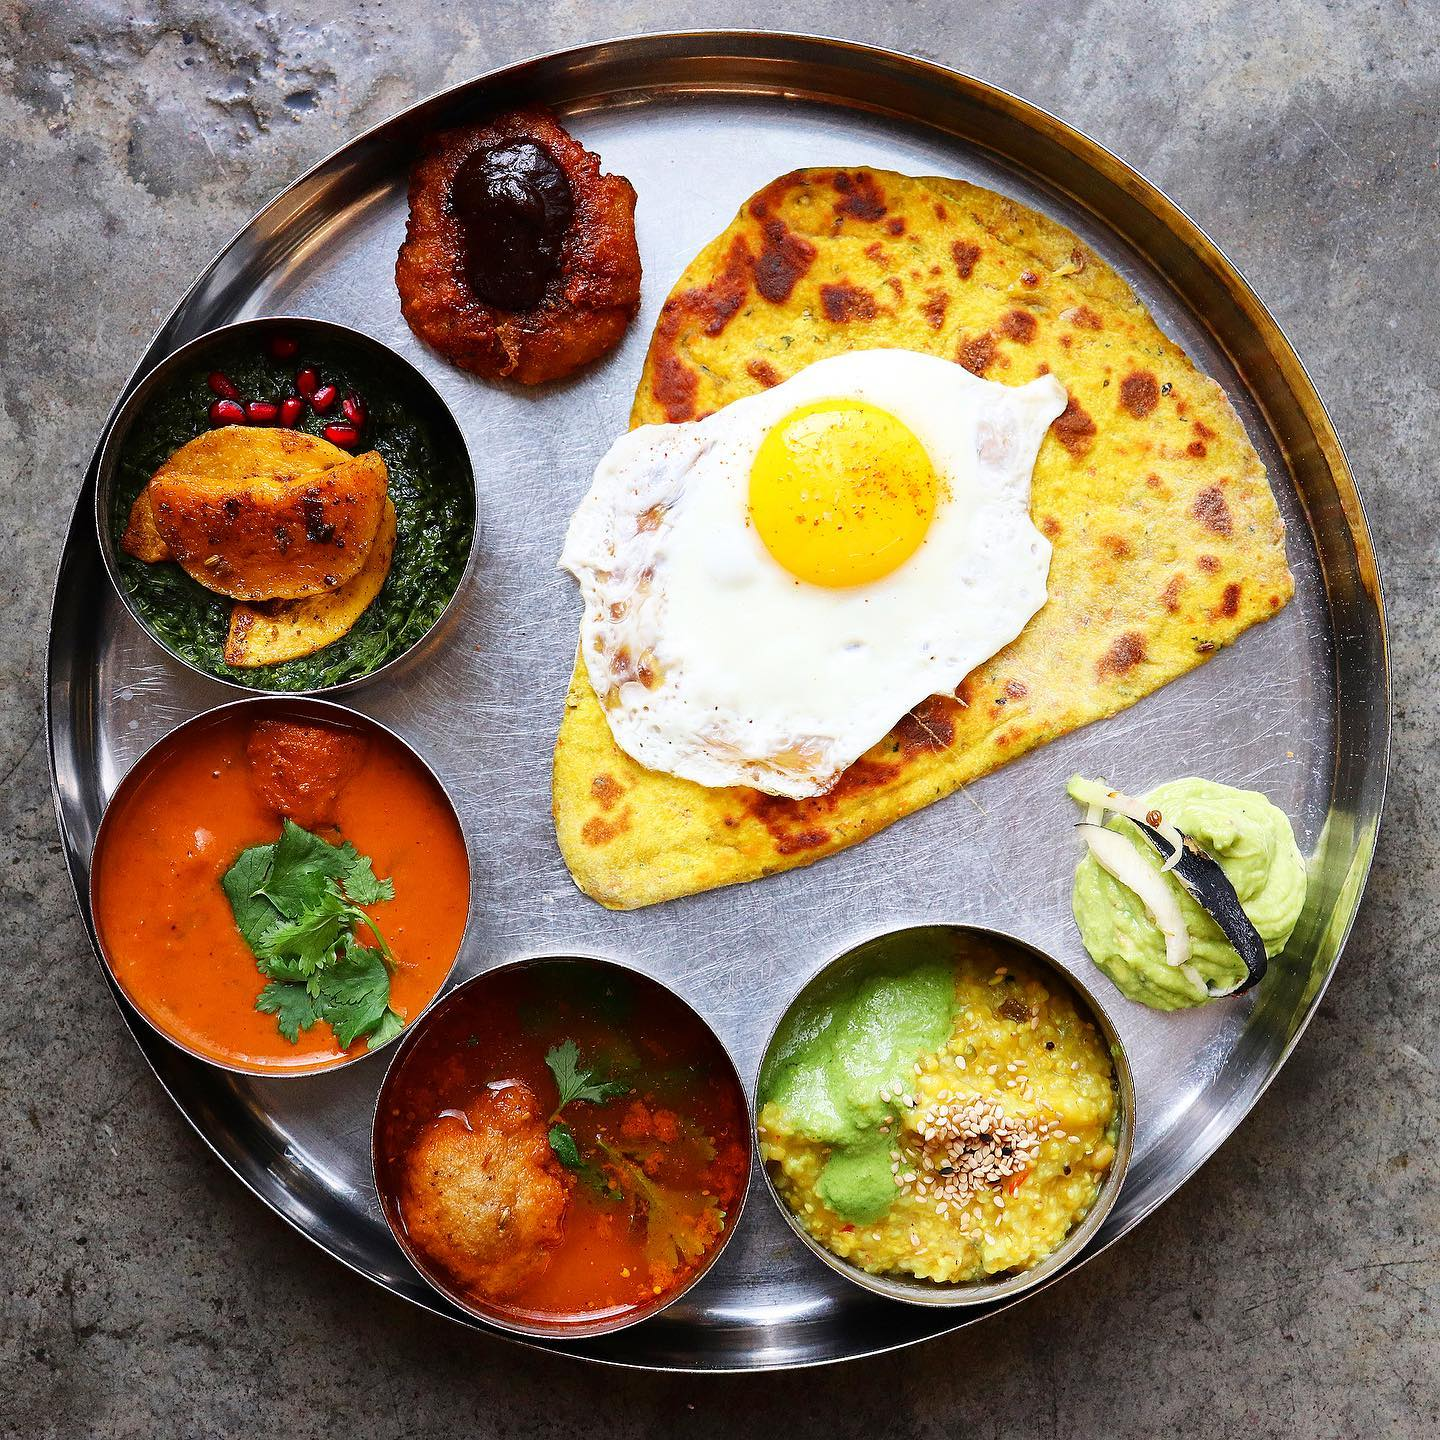 a morning thali spread with crispy carrot paratha and a fried egg